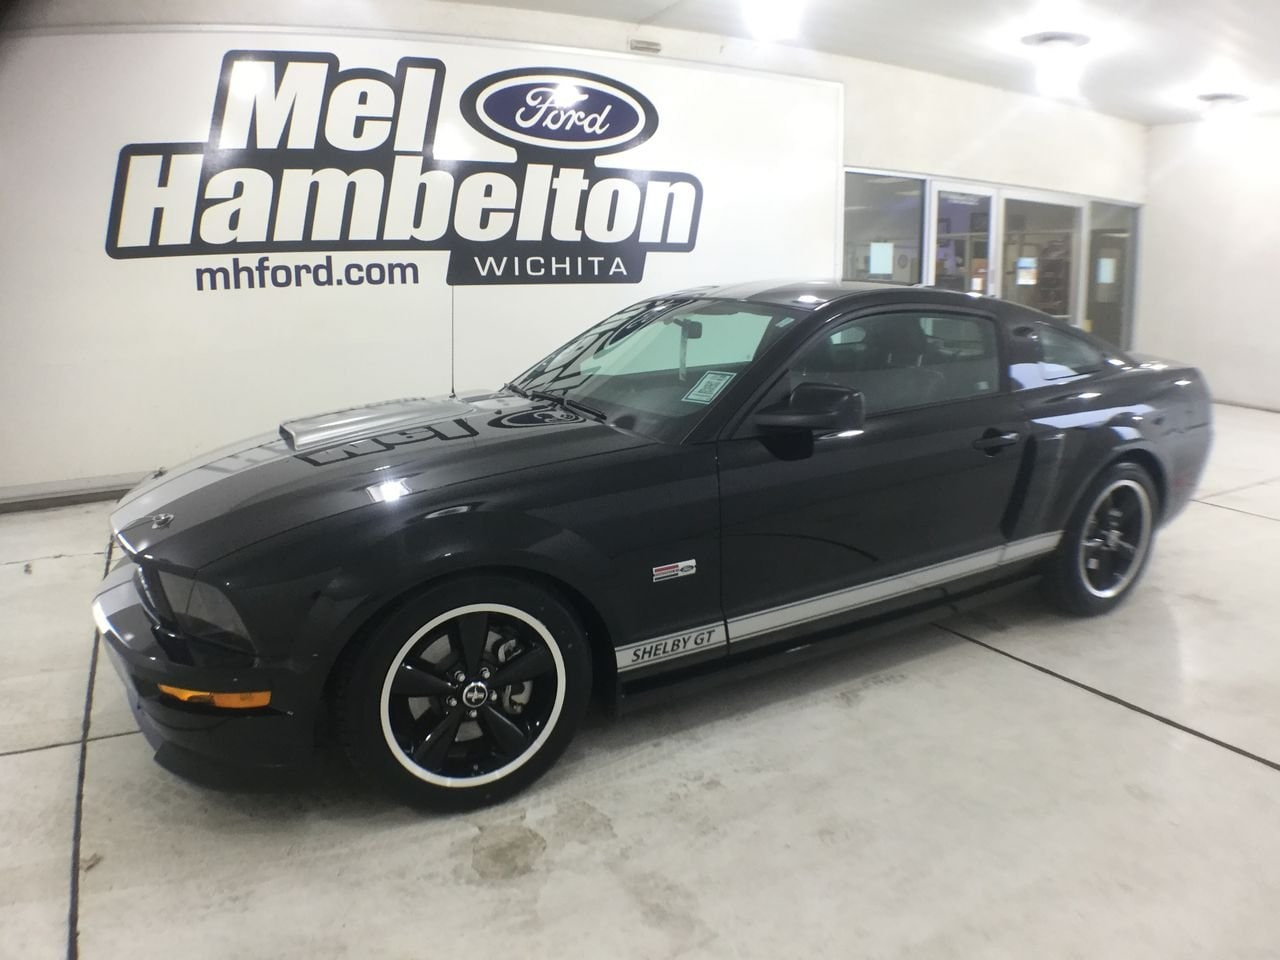 2007 Ford Mustang GT Premium Coupe